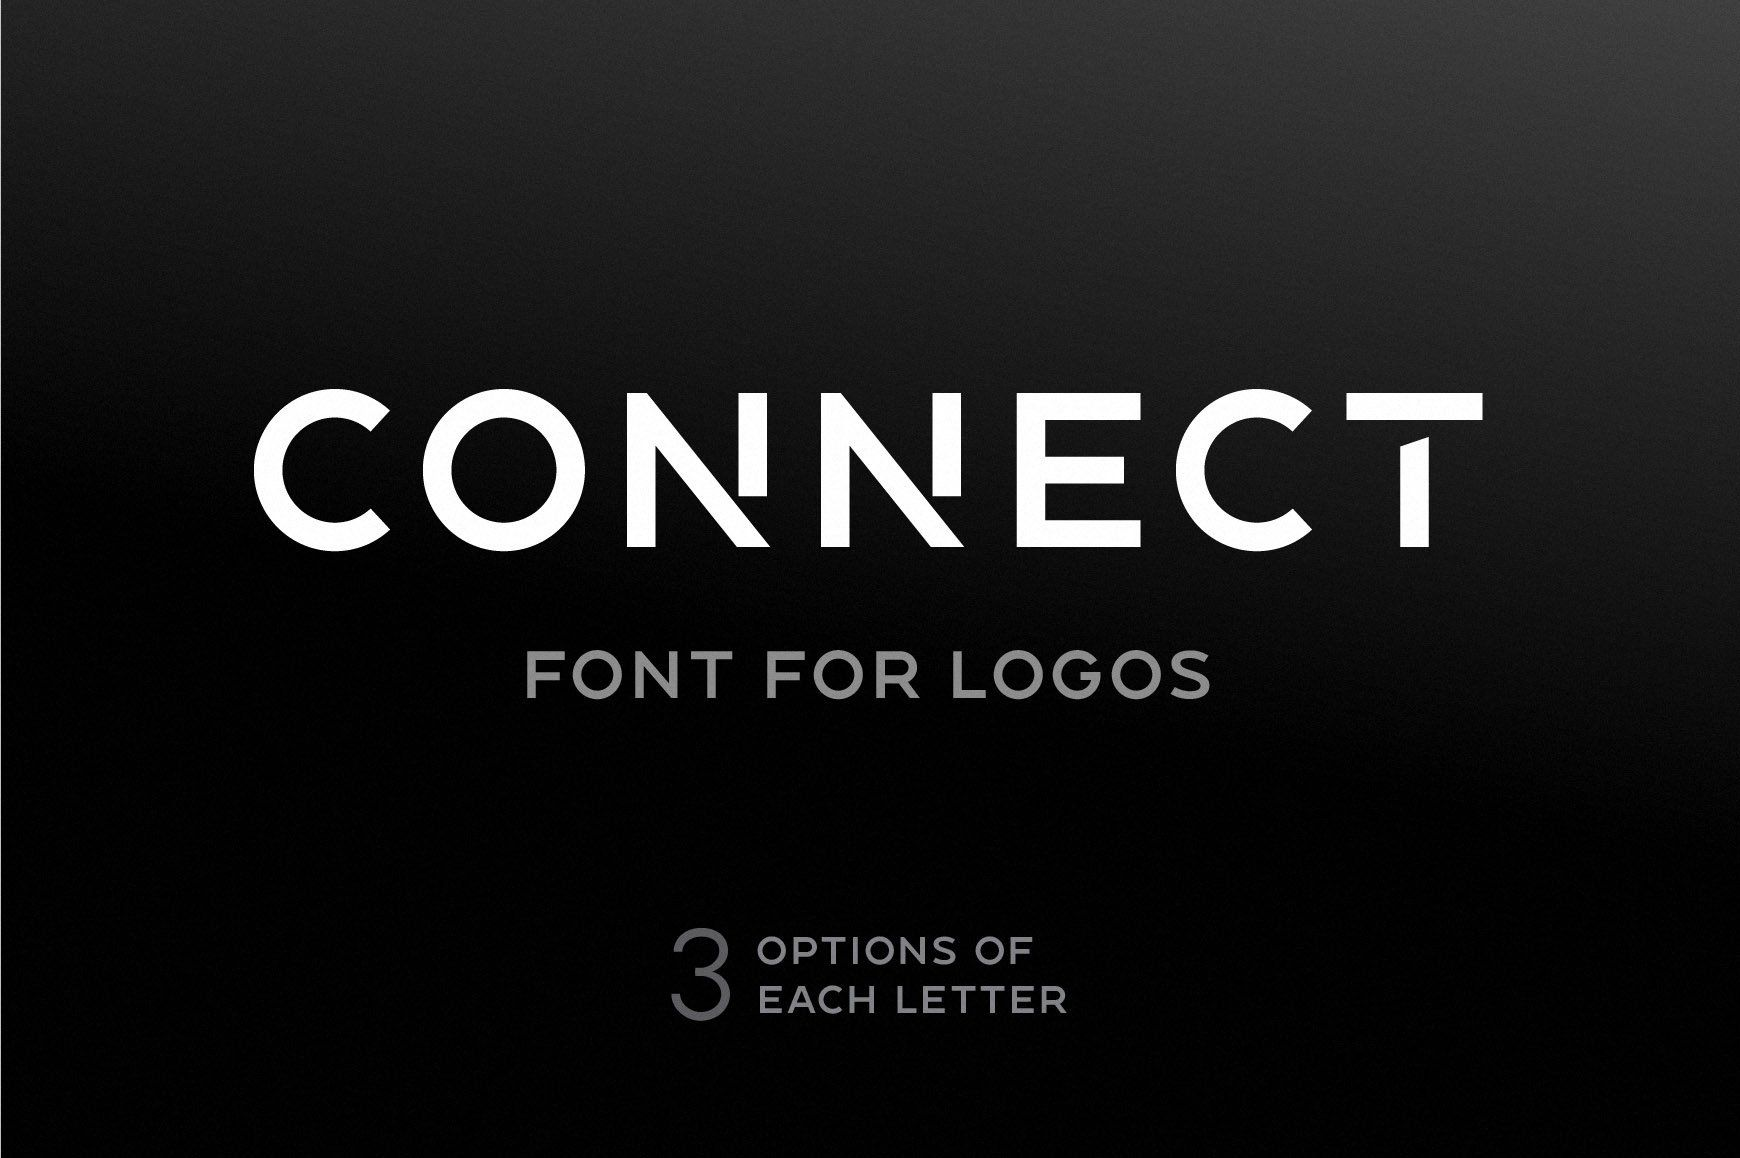 Connect Font For Logos in 2020 Lettering, Fonts